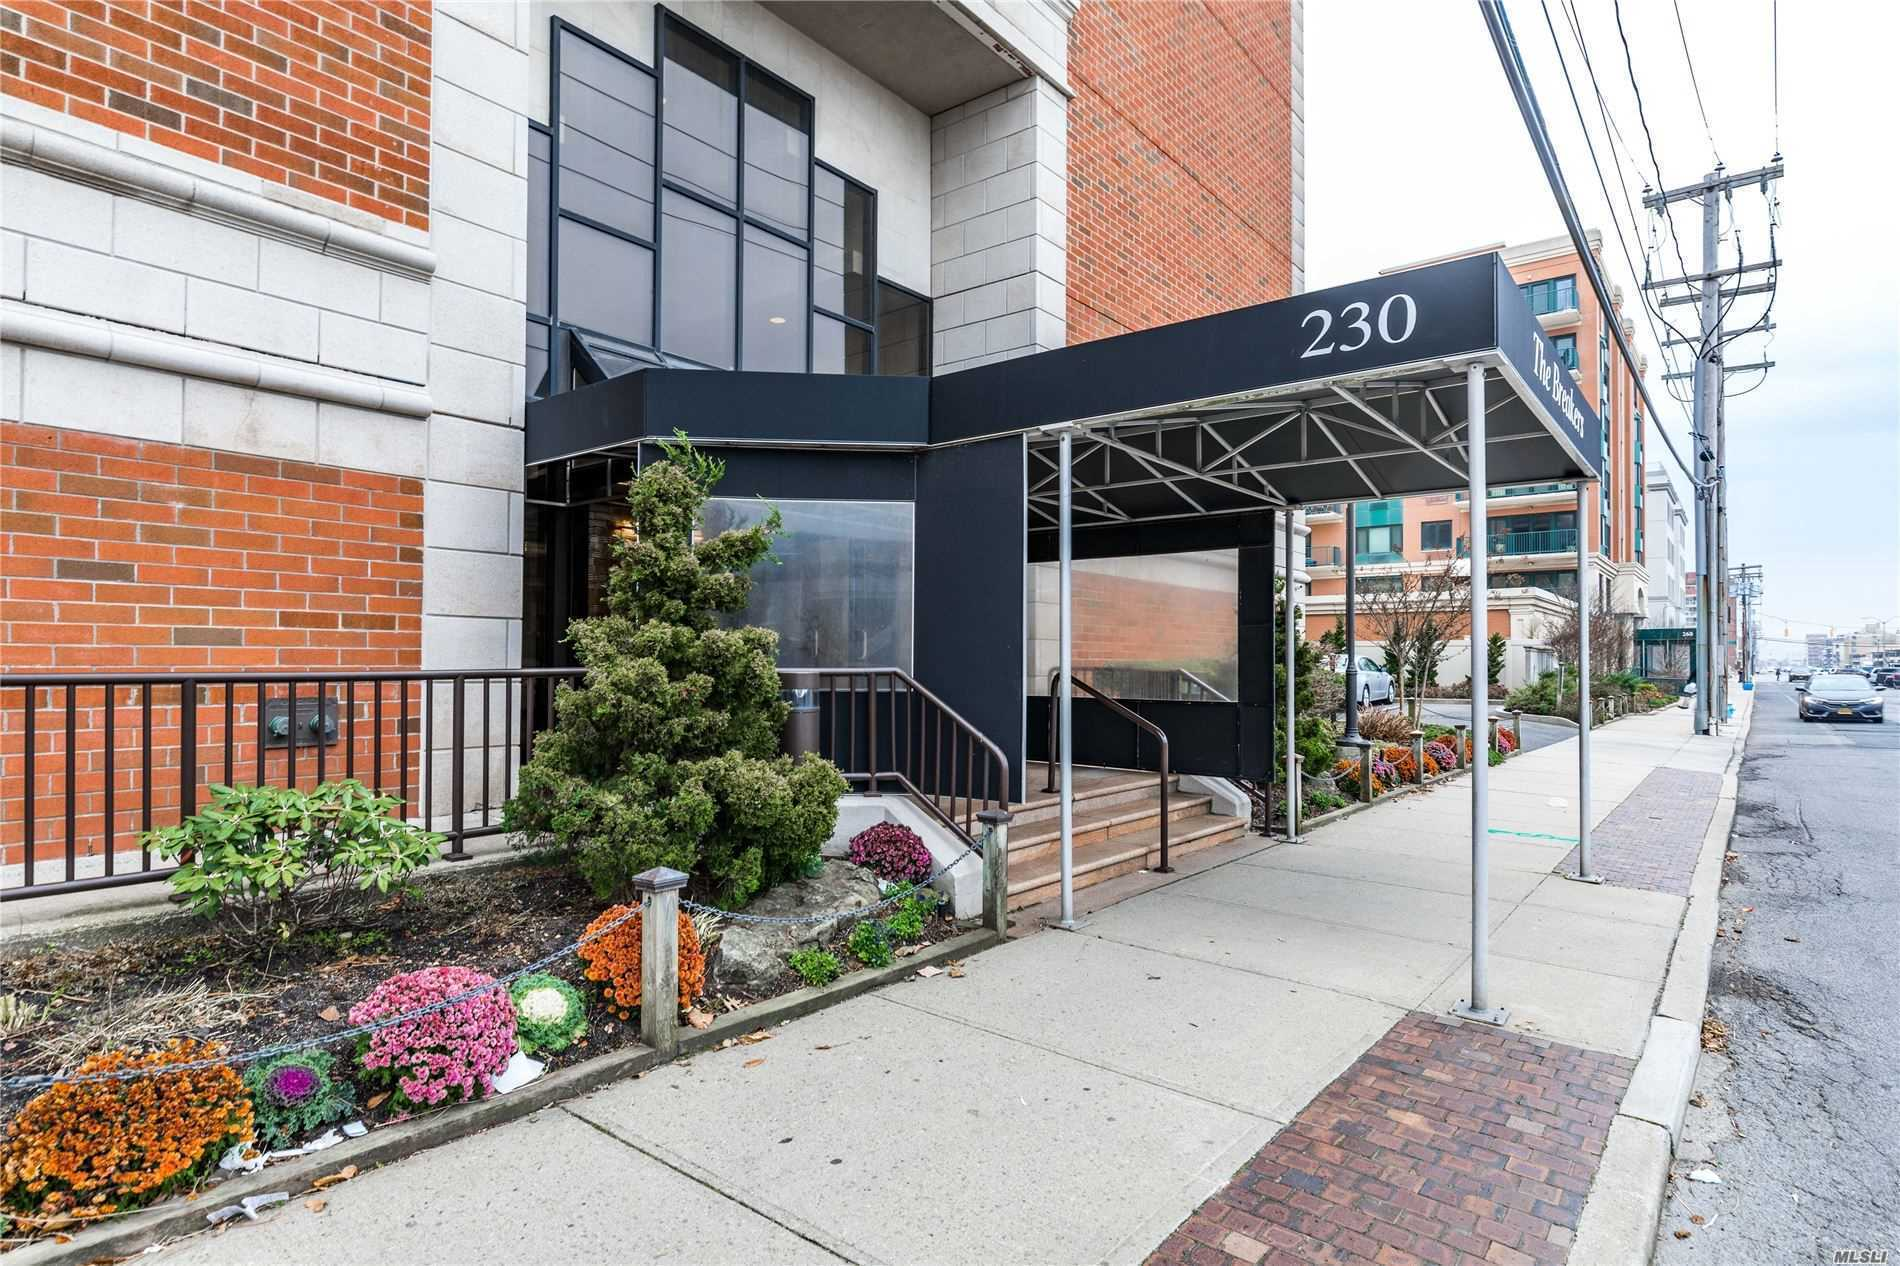 Property for sale at 230 W Broadway # 110, Long Beach NY 11561, Long Beach,  New York 11561